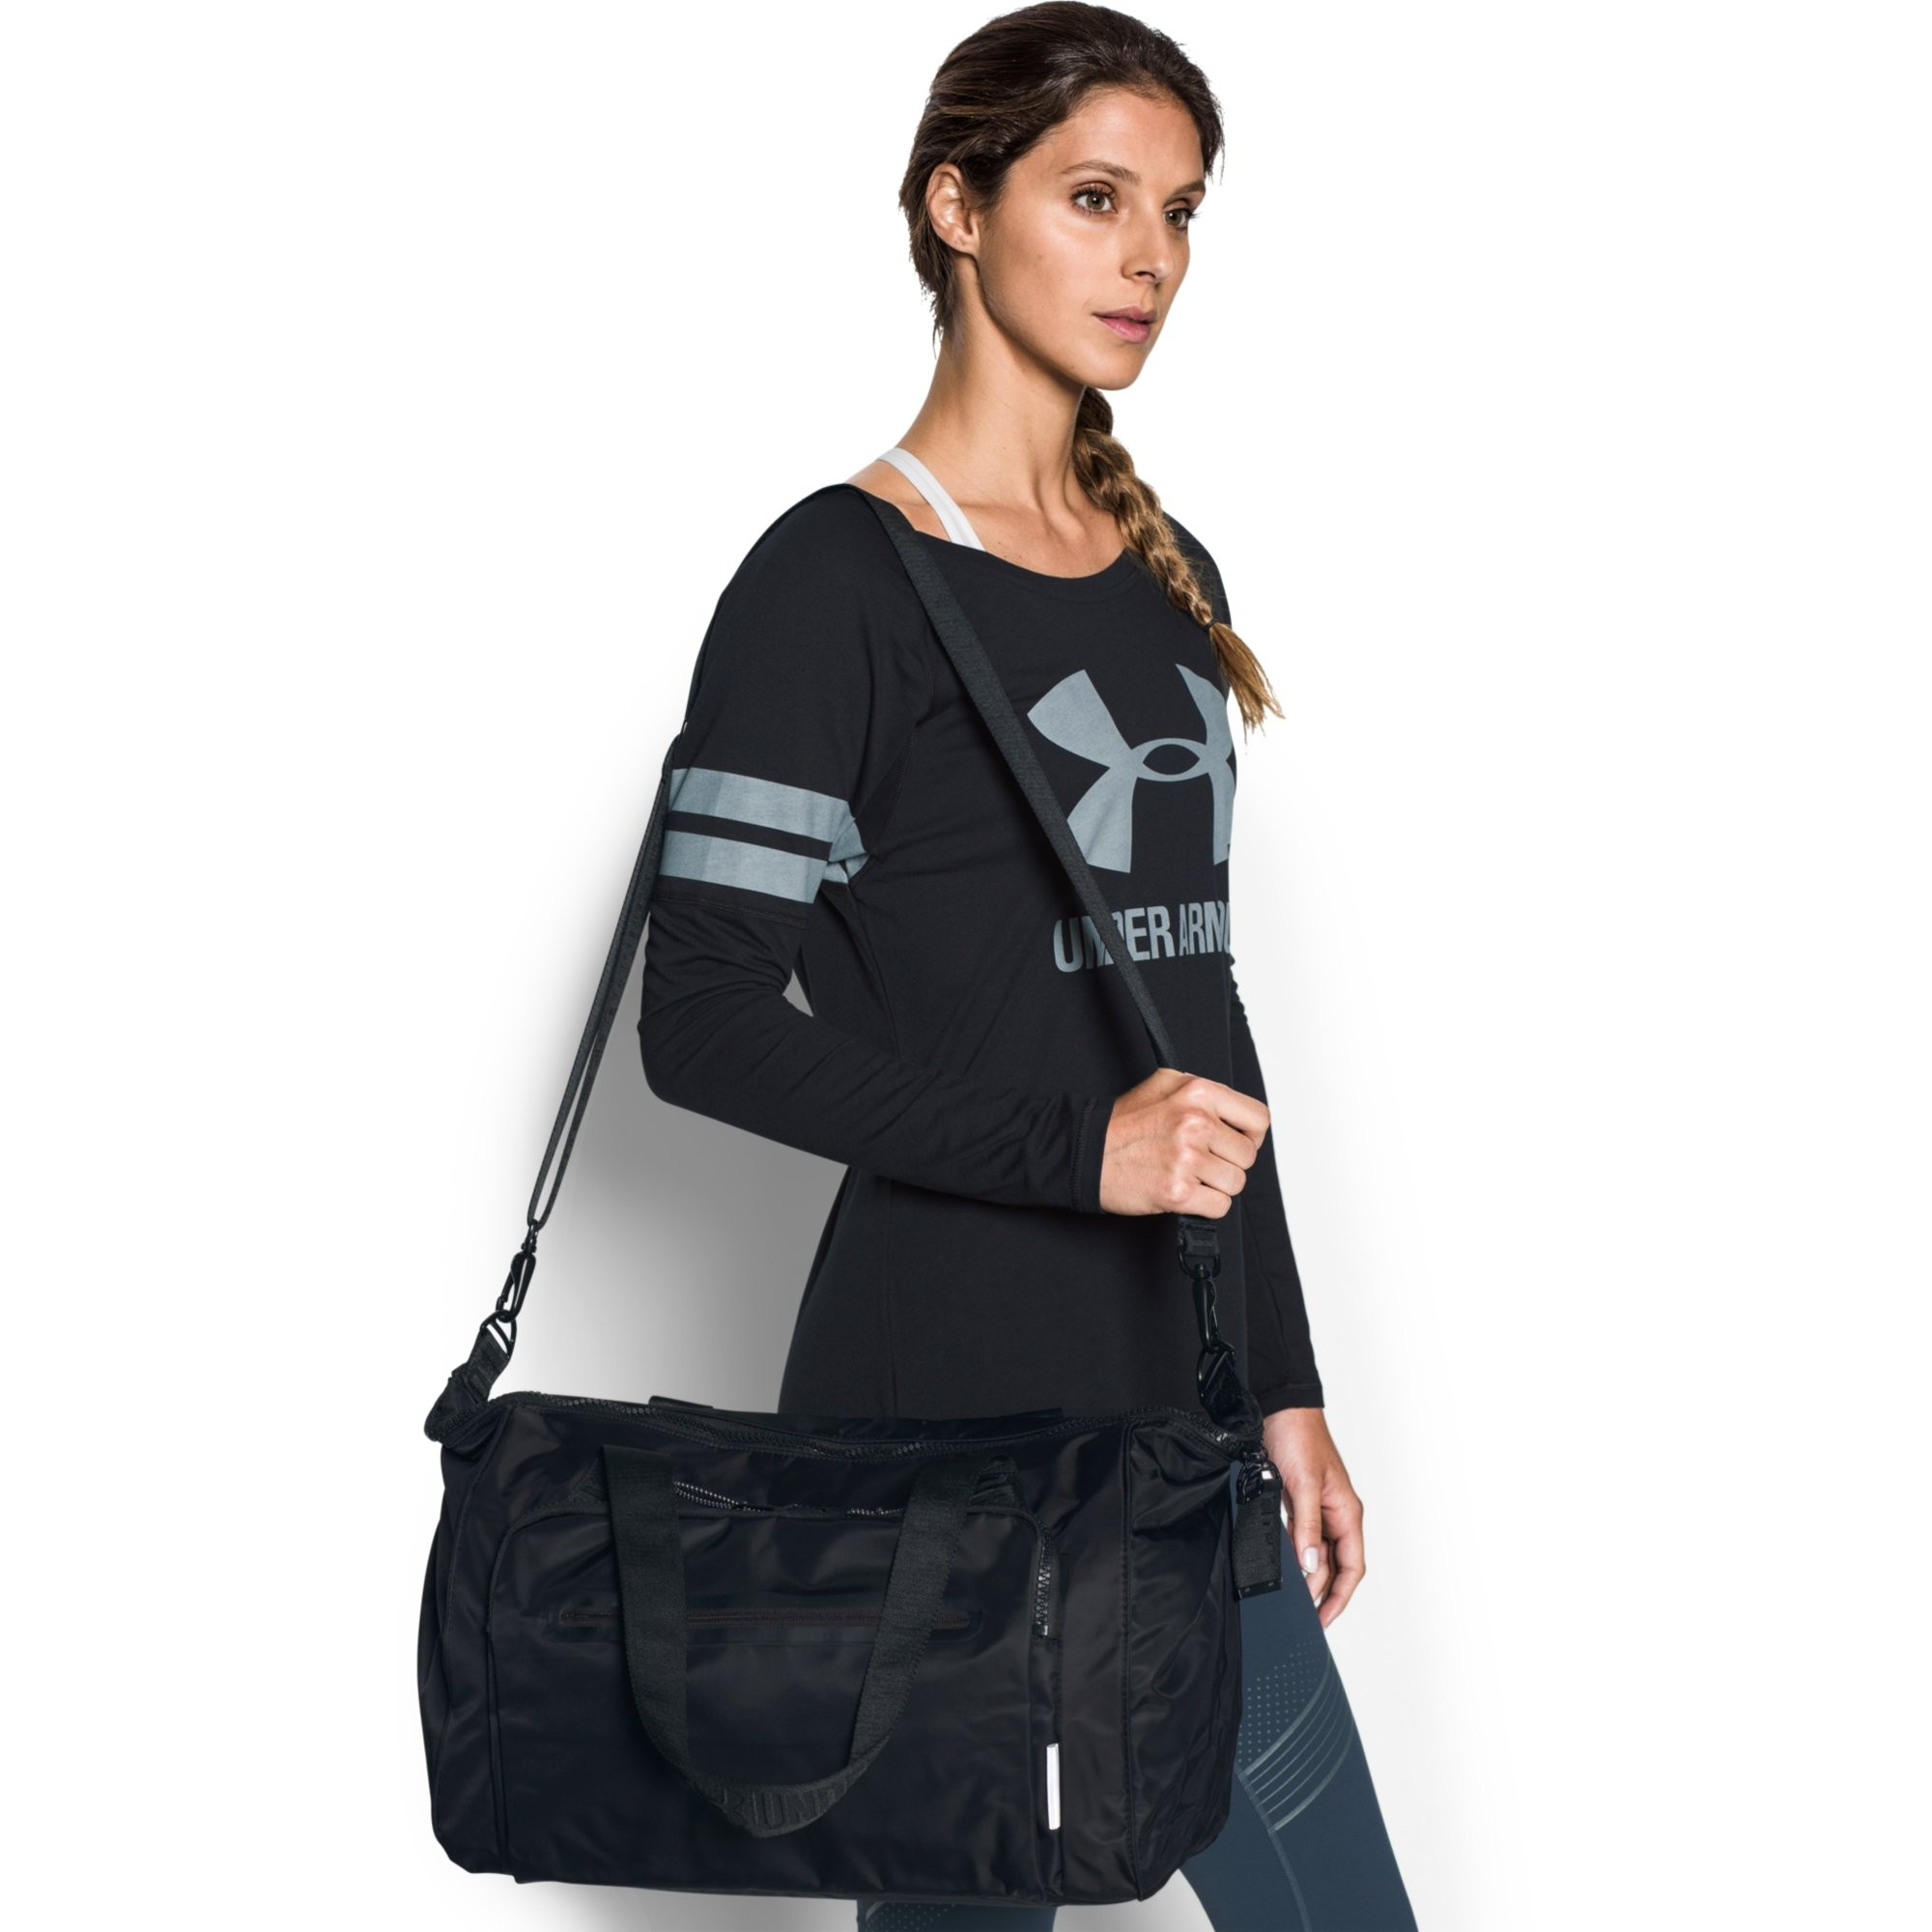 Allen s Hospital Uniforms Under Armour Women s Essentials Duffle Bag - SALE  AND CLOSEOUTS 6d2aec4f24cde